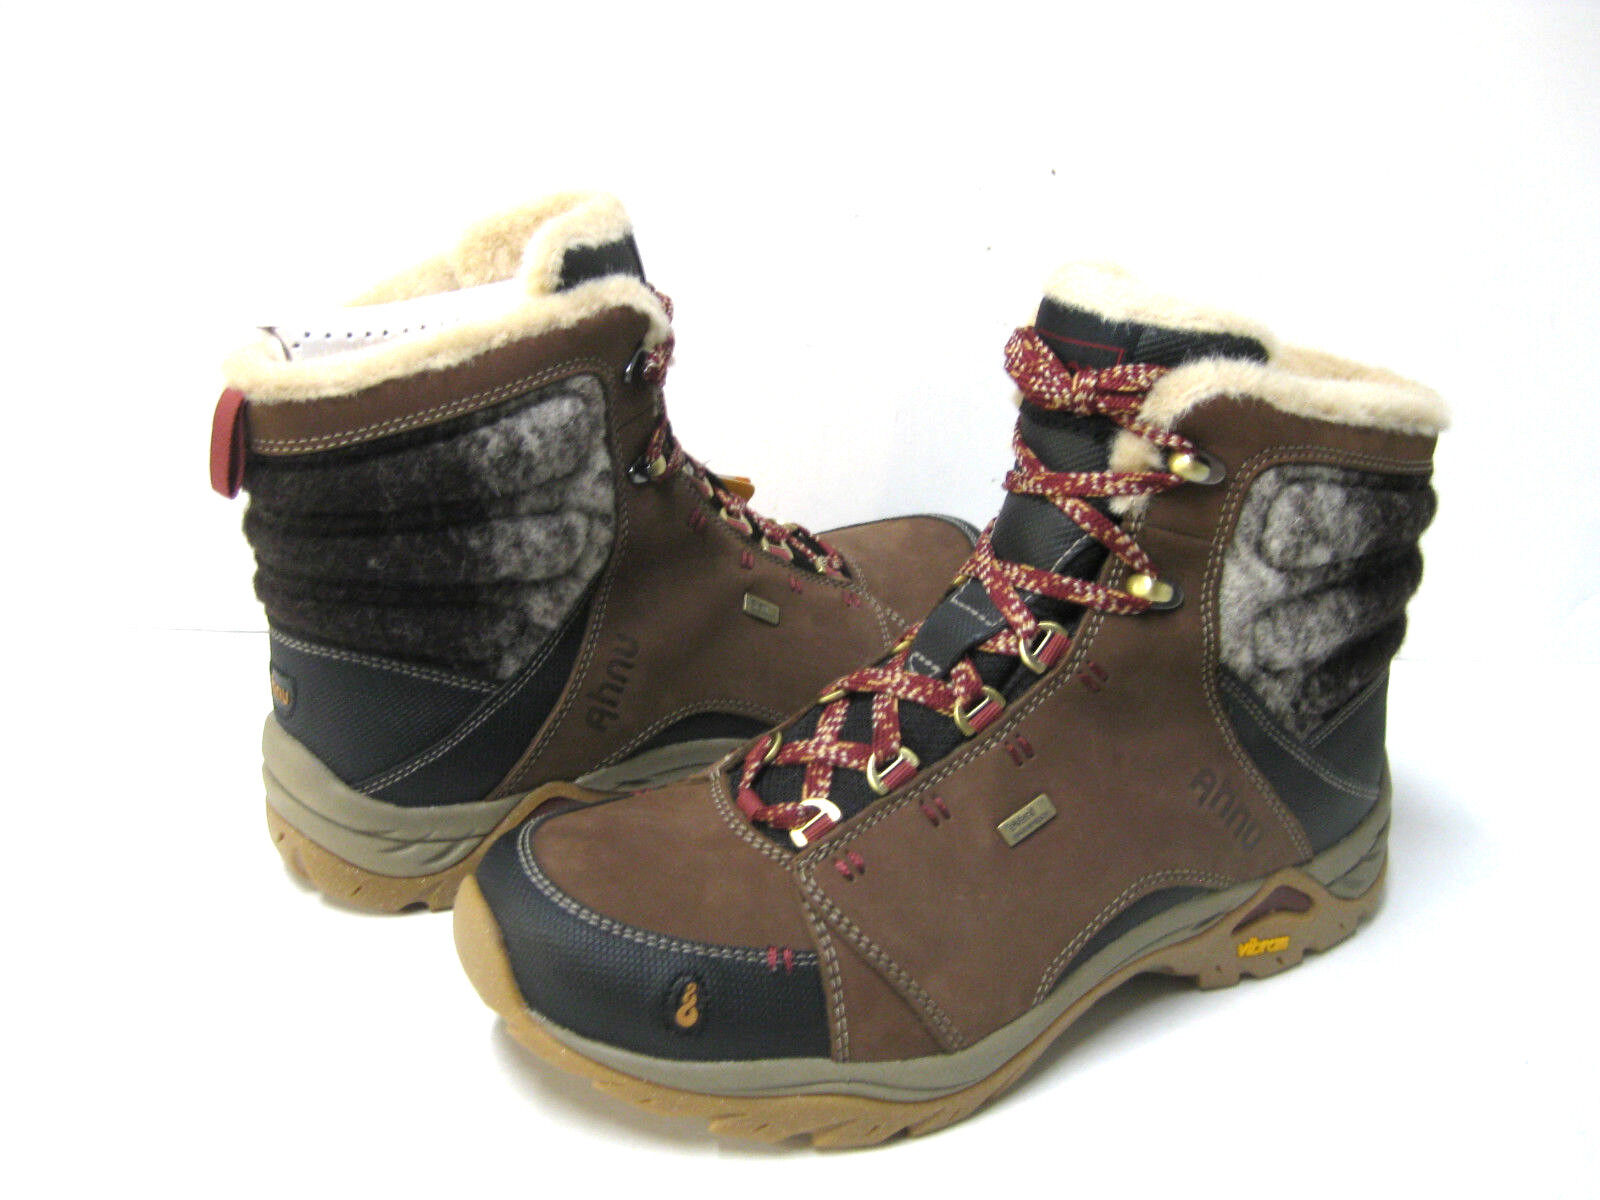 AHNU MONTARA LUXE WP Donna HIKING BOOTS LEATHER CODUROY US 9 //EU 40